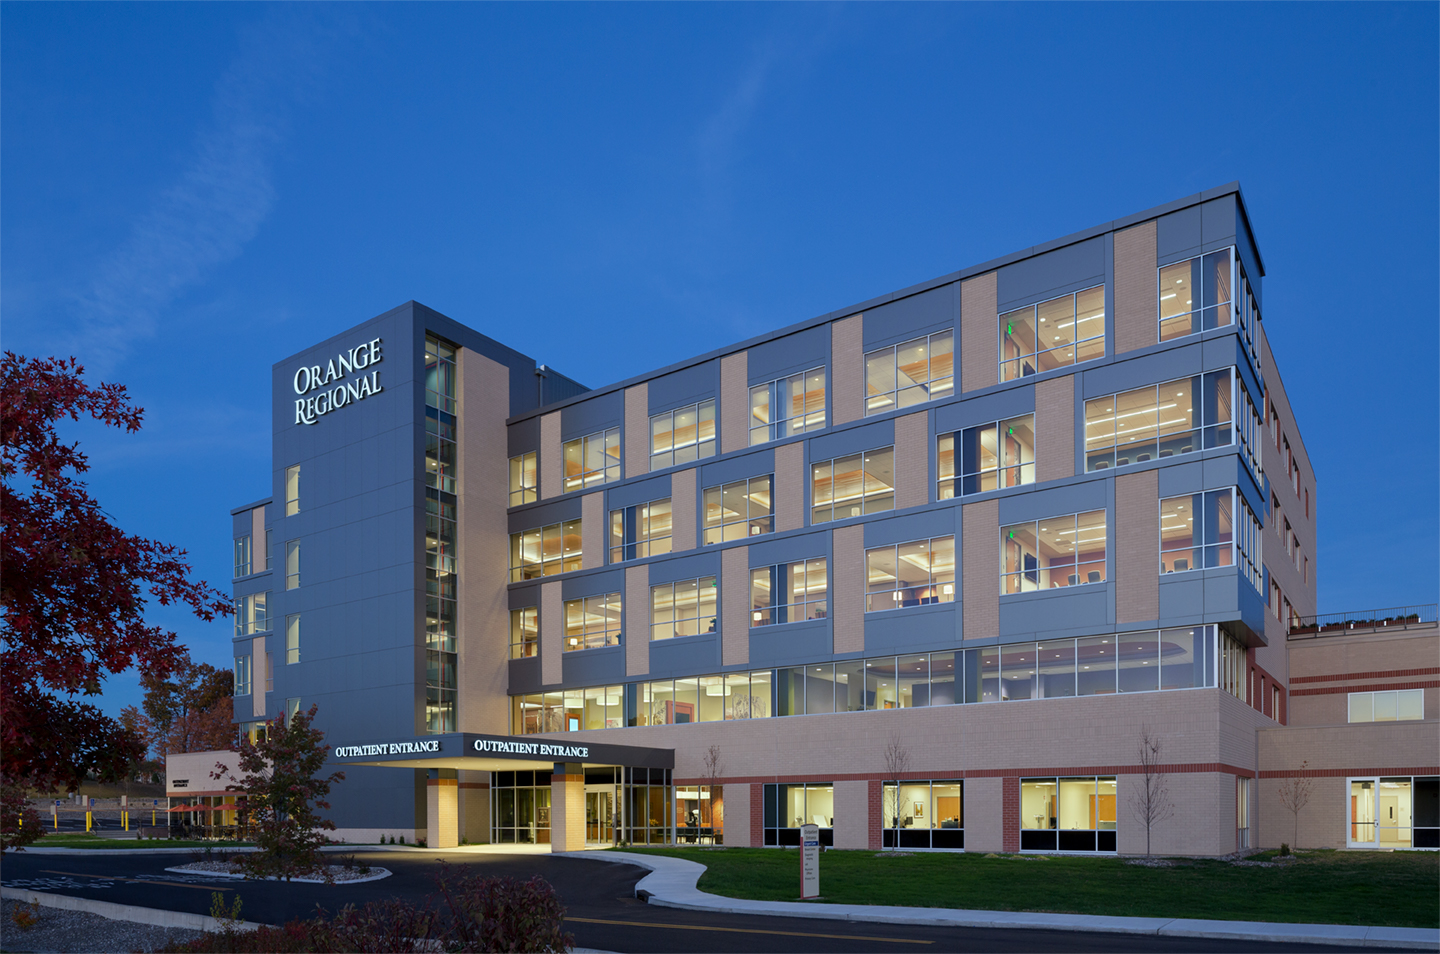 Garnet Health Doctors Outpatient Building in Middletown